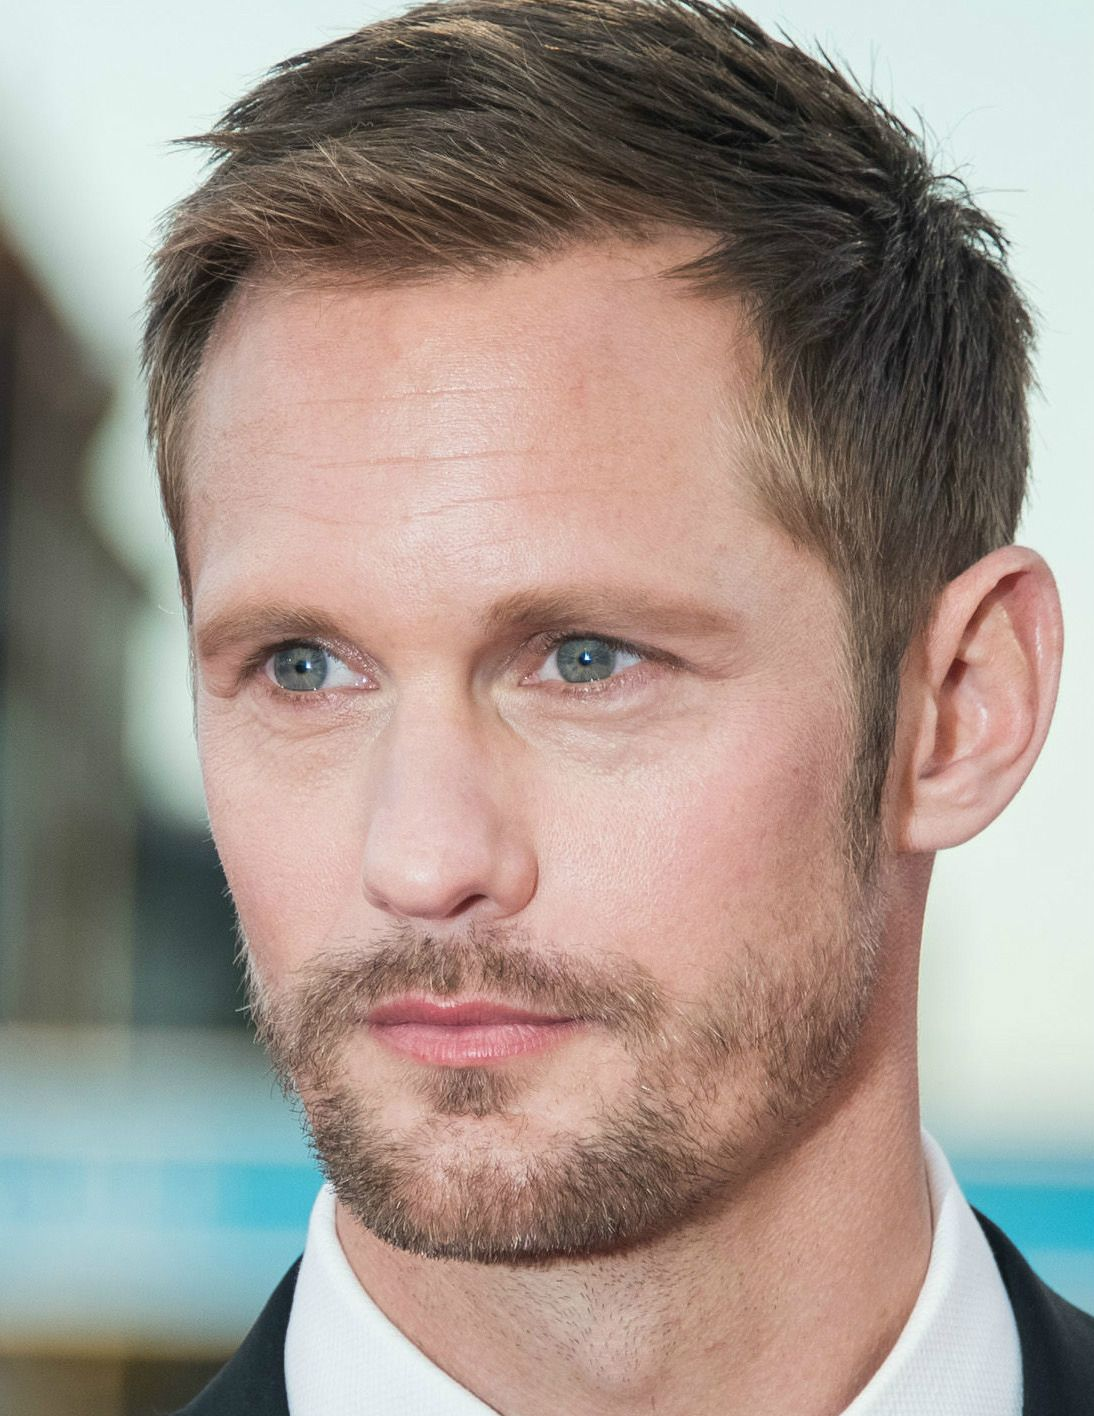 Short curly haircut for men pin by claudia on alexander skarsgård  pinterest  alexander skarsgard